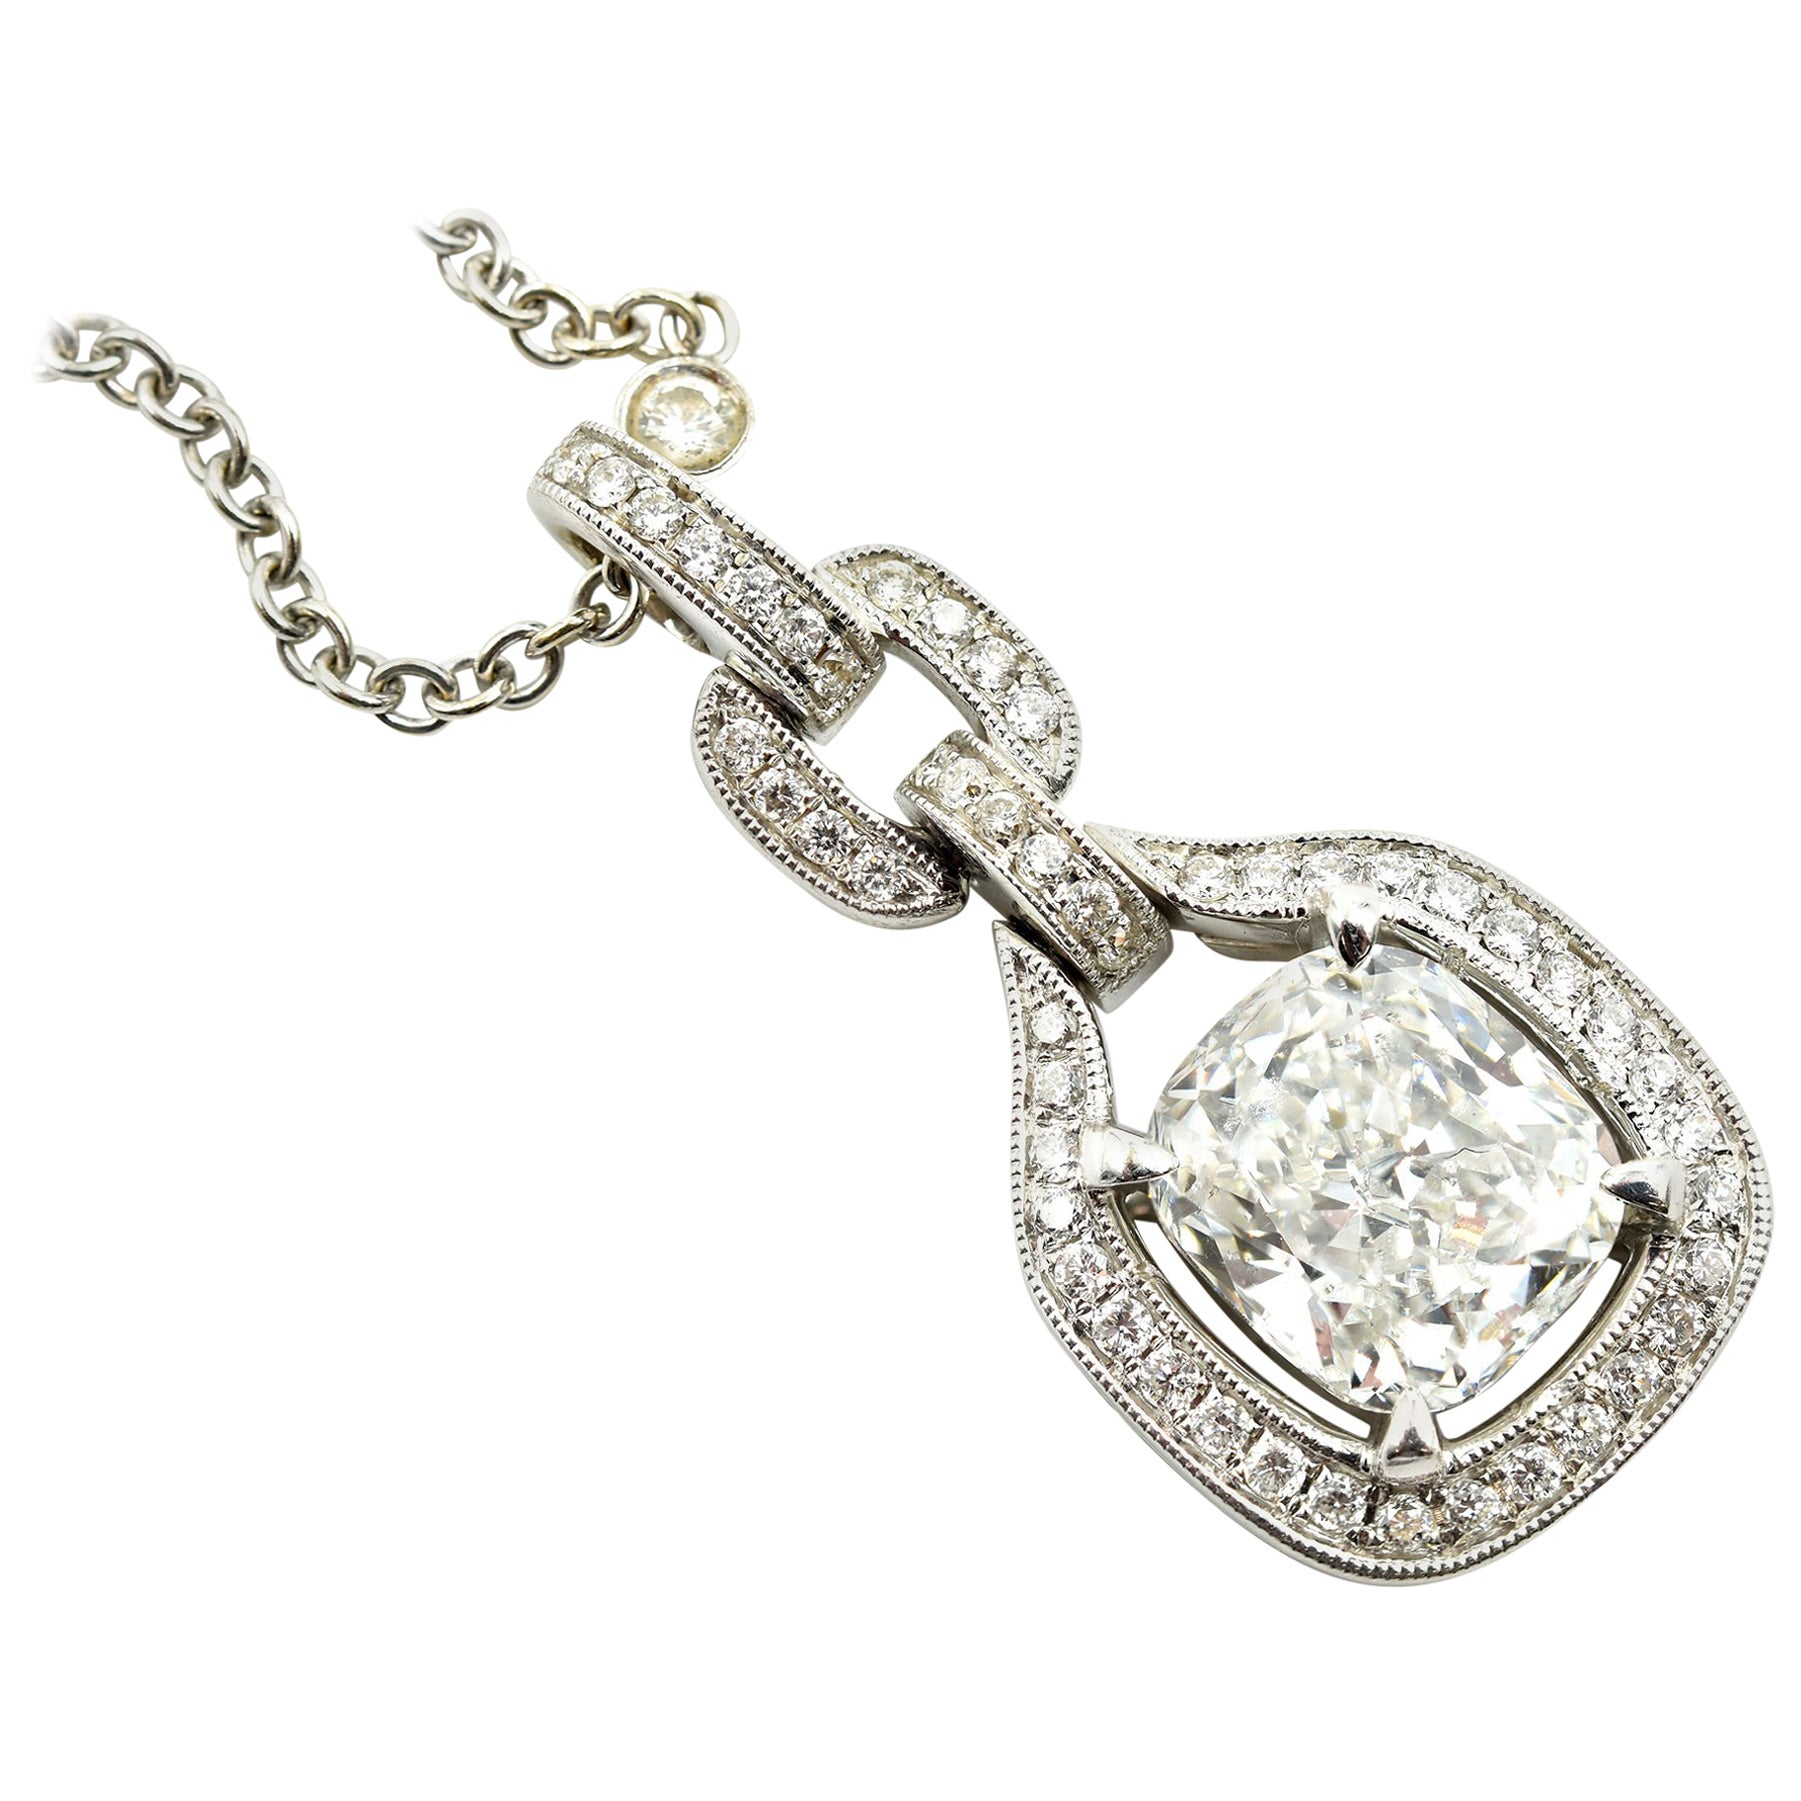 d2c46e36d 2.20 Carat Cushion Cut Diamond Pendant on Diamond Necklace 18 Karat White  Gold For Sale at 1stdibs